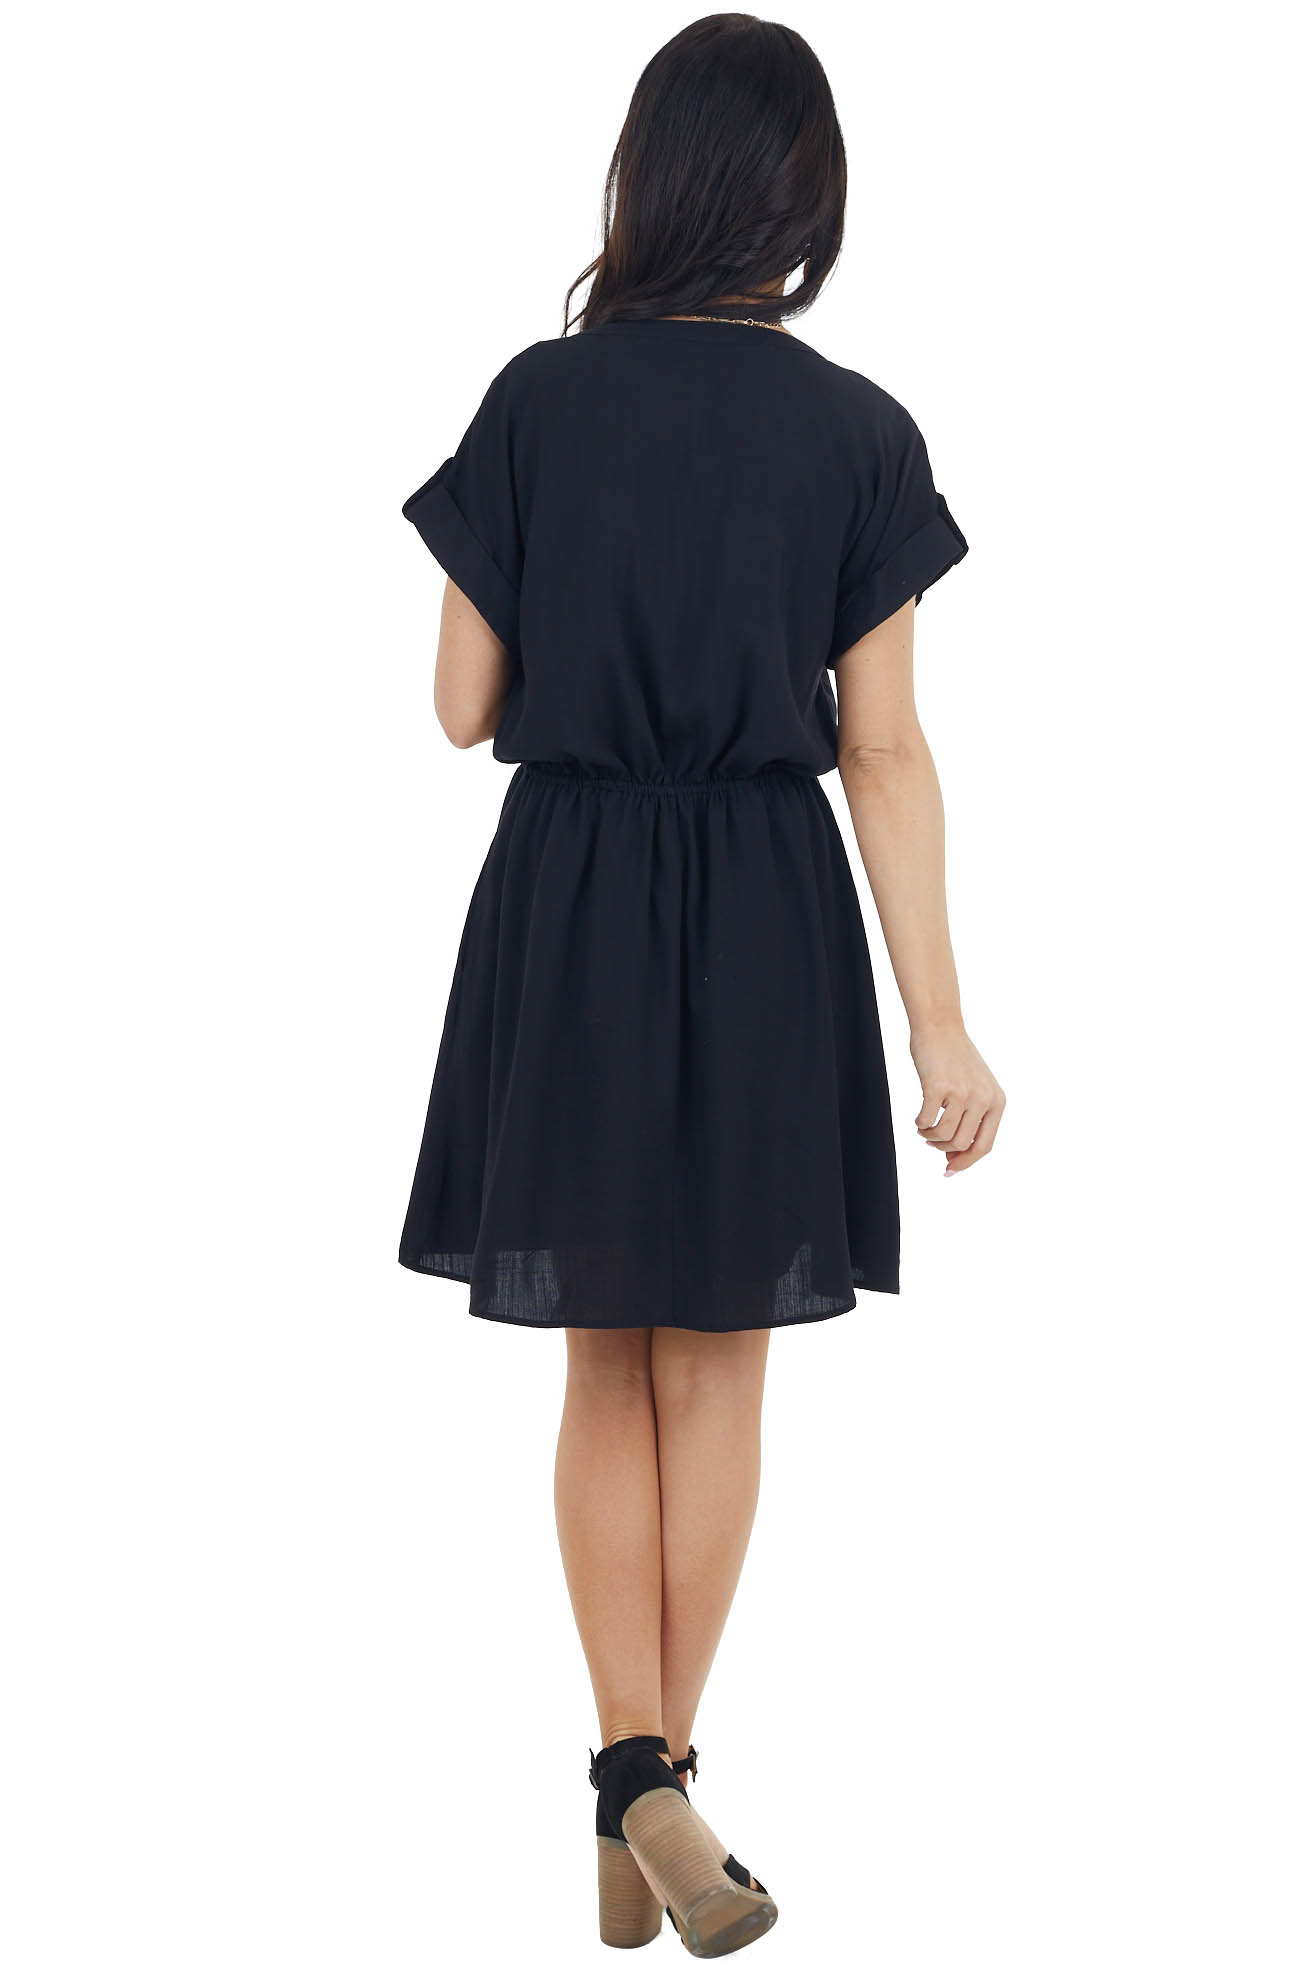 Black Short Sleeve Button Down Dress with Chest Pockets